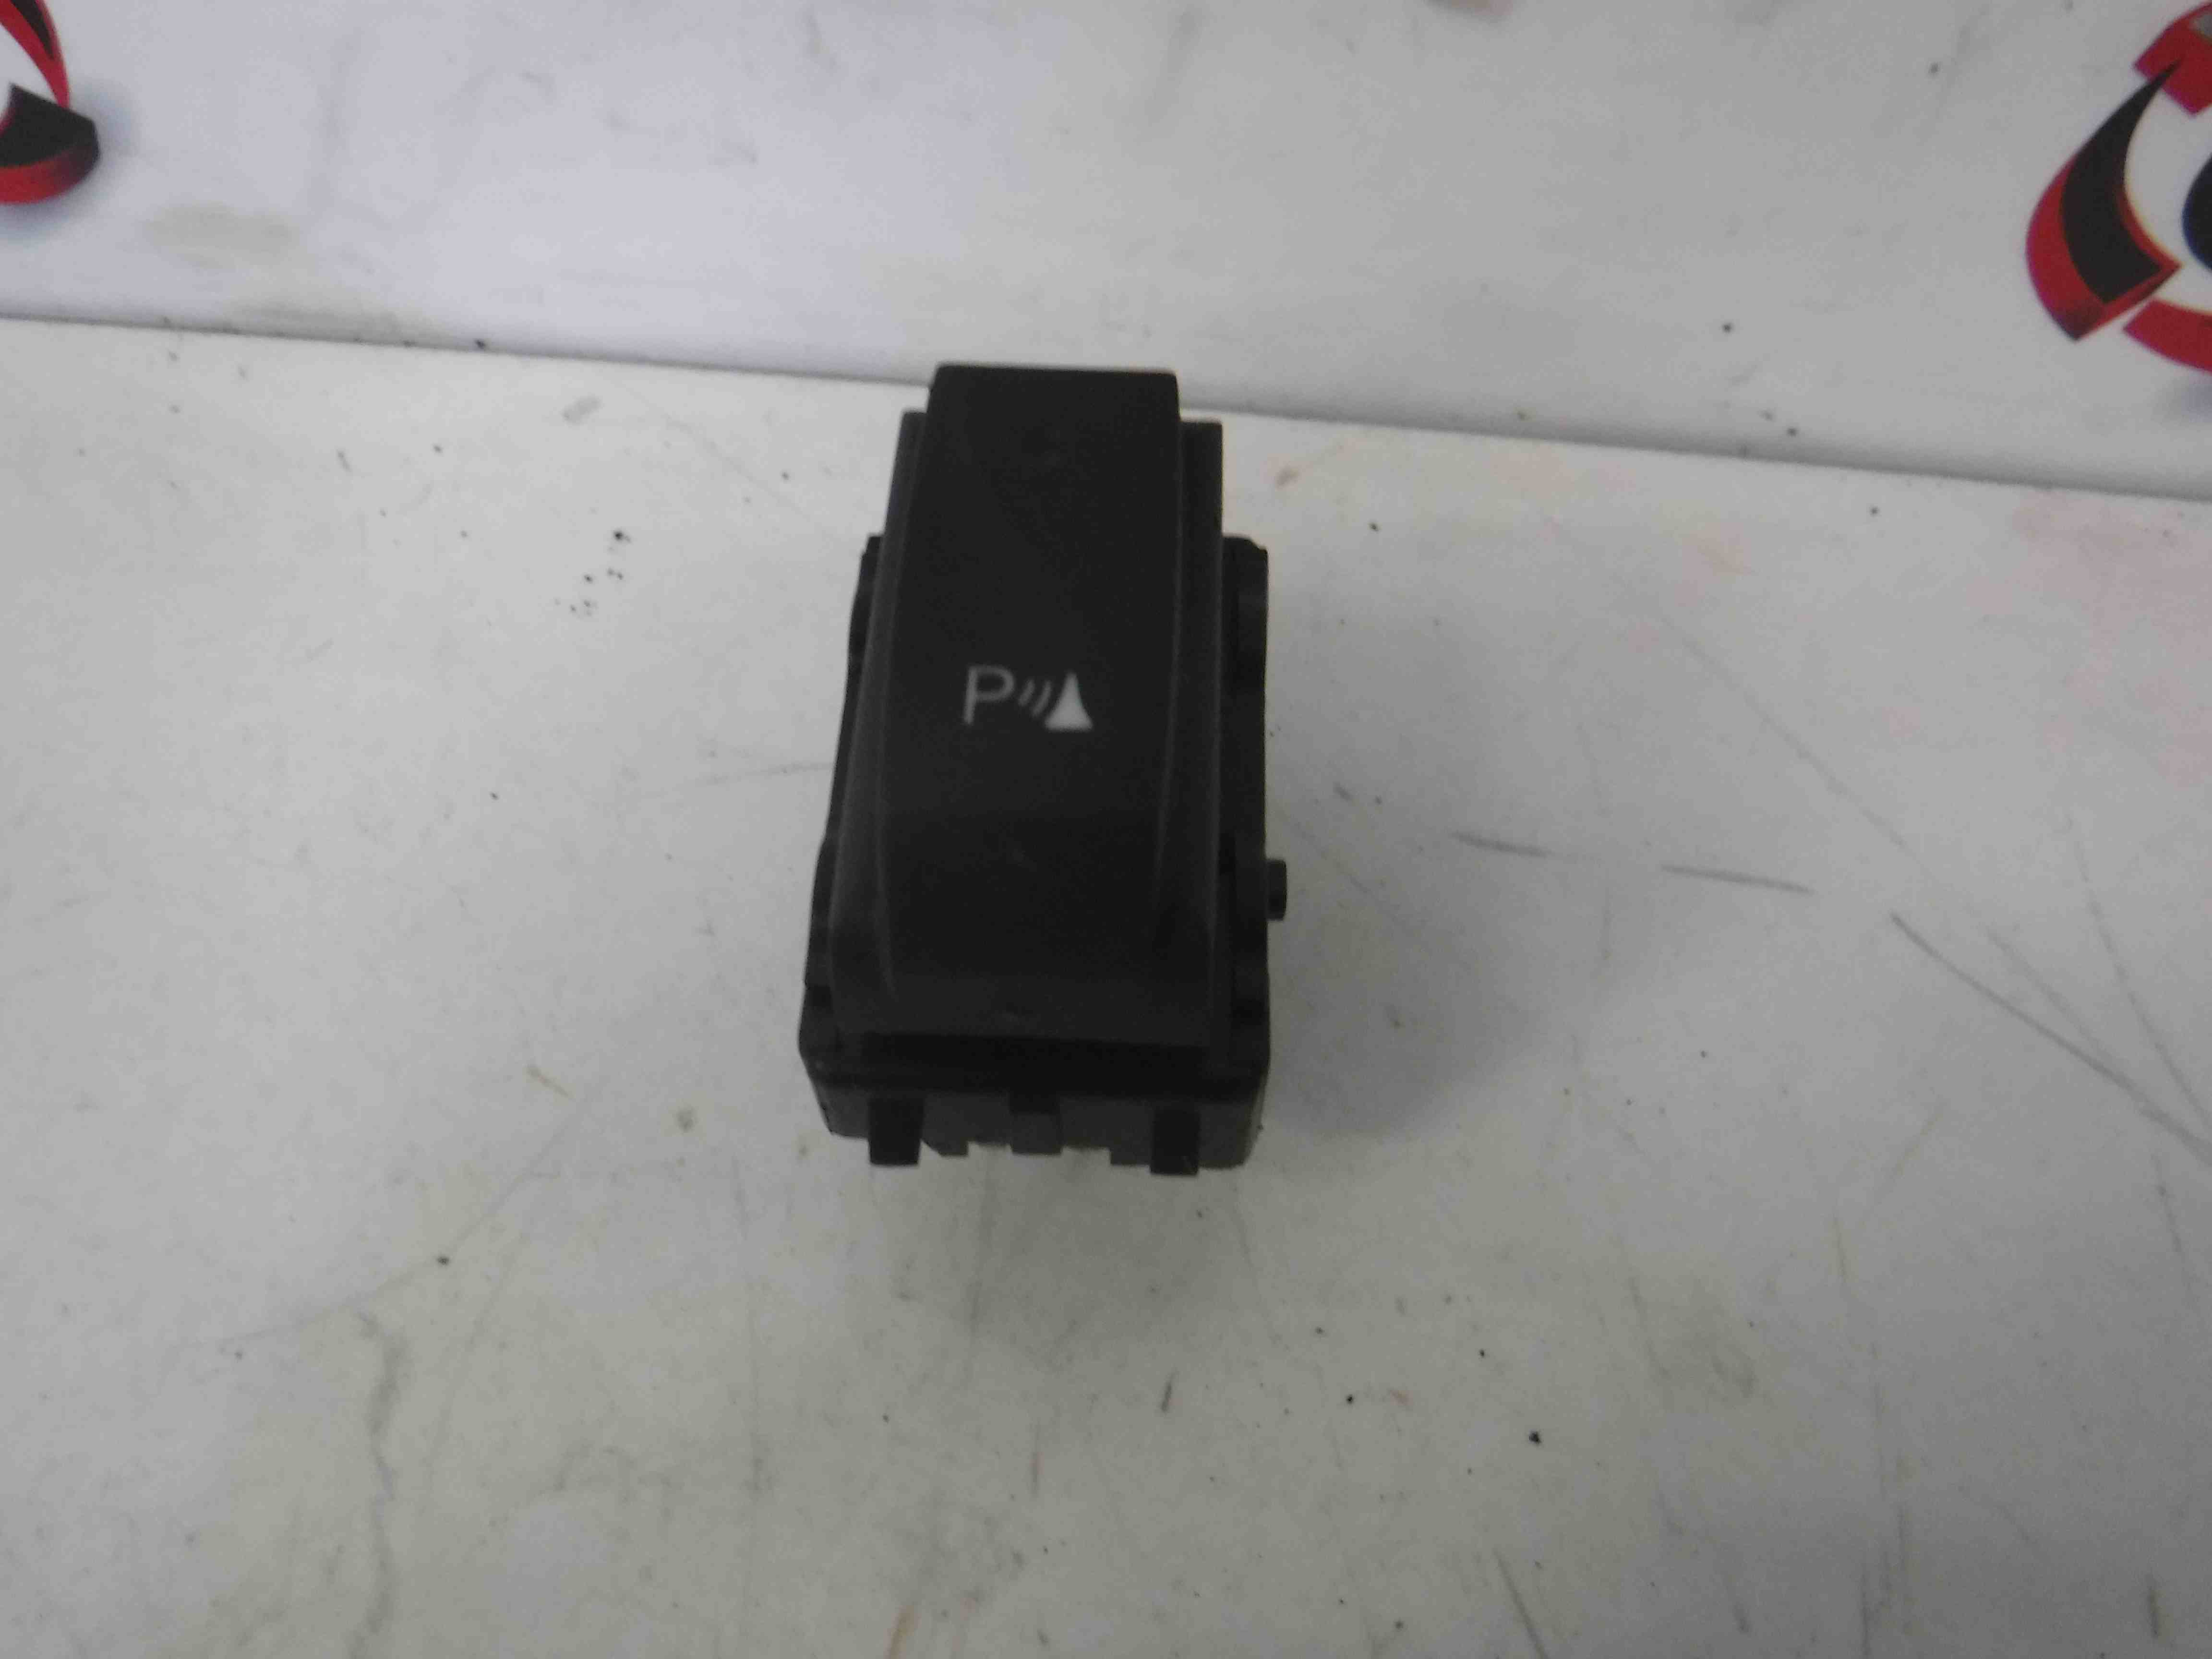 Renault Clio MK4 2013-2015 PDC Parking Aid Switch Button 284480002r